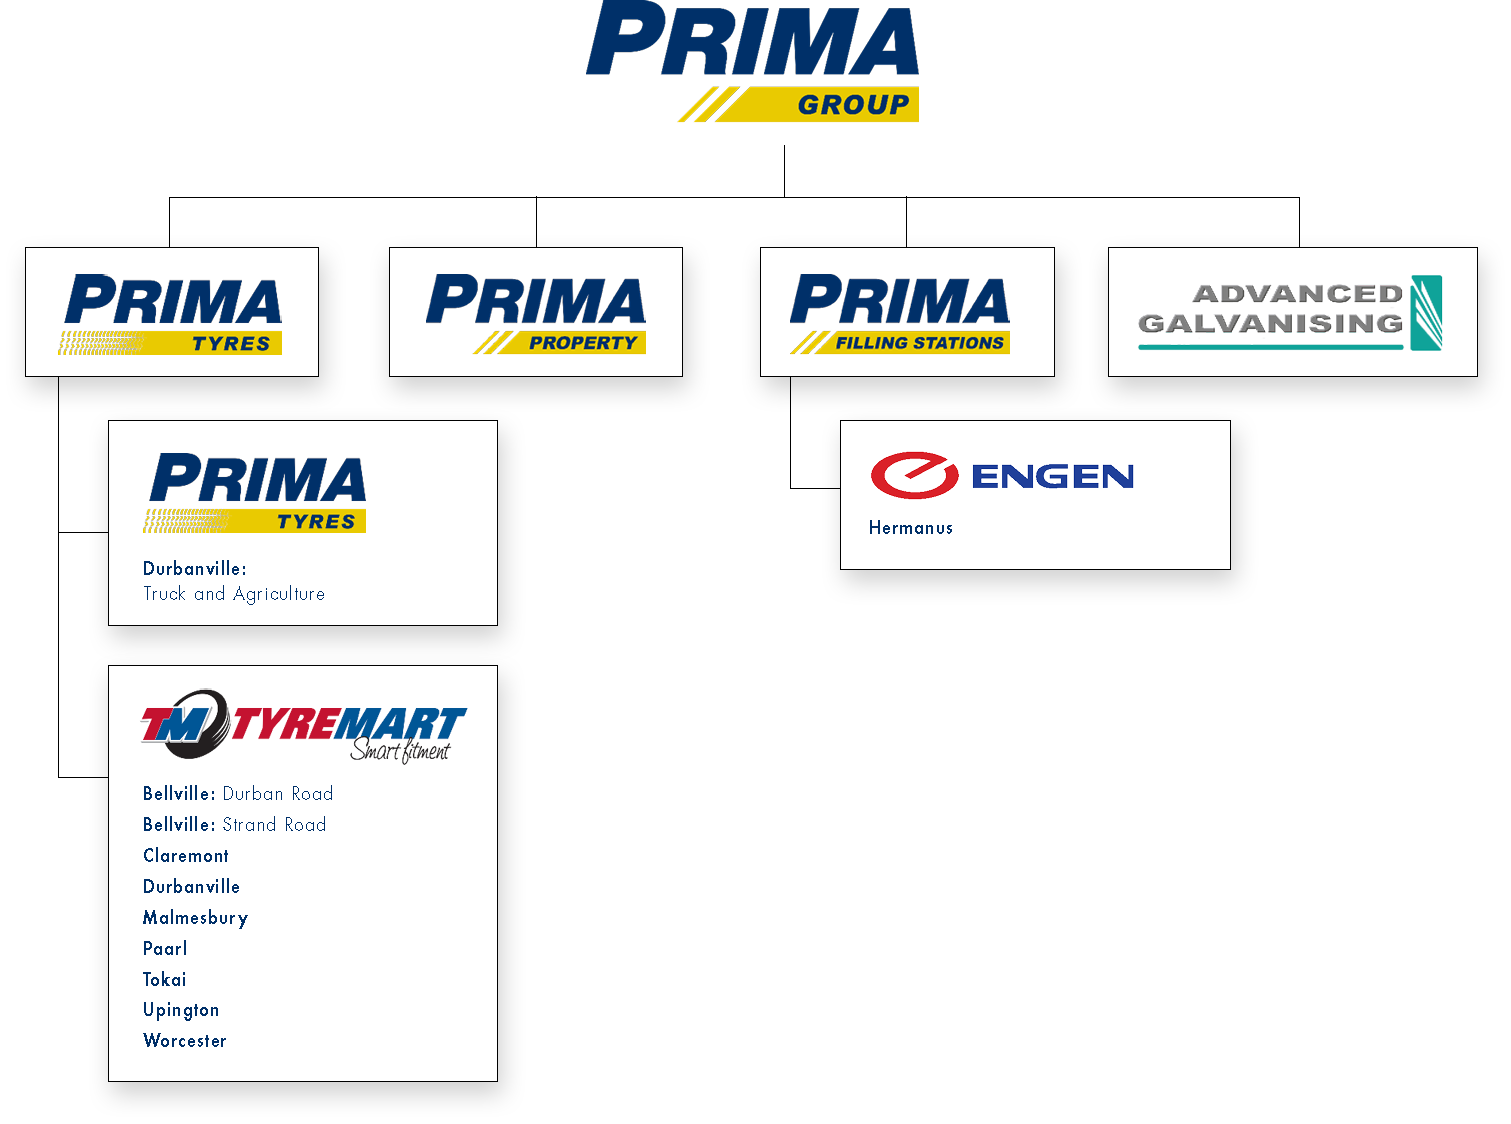 The Prima Group structure